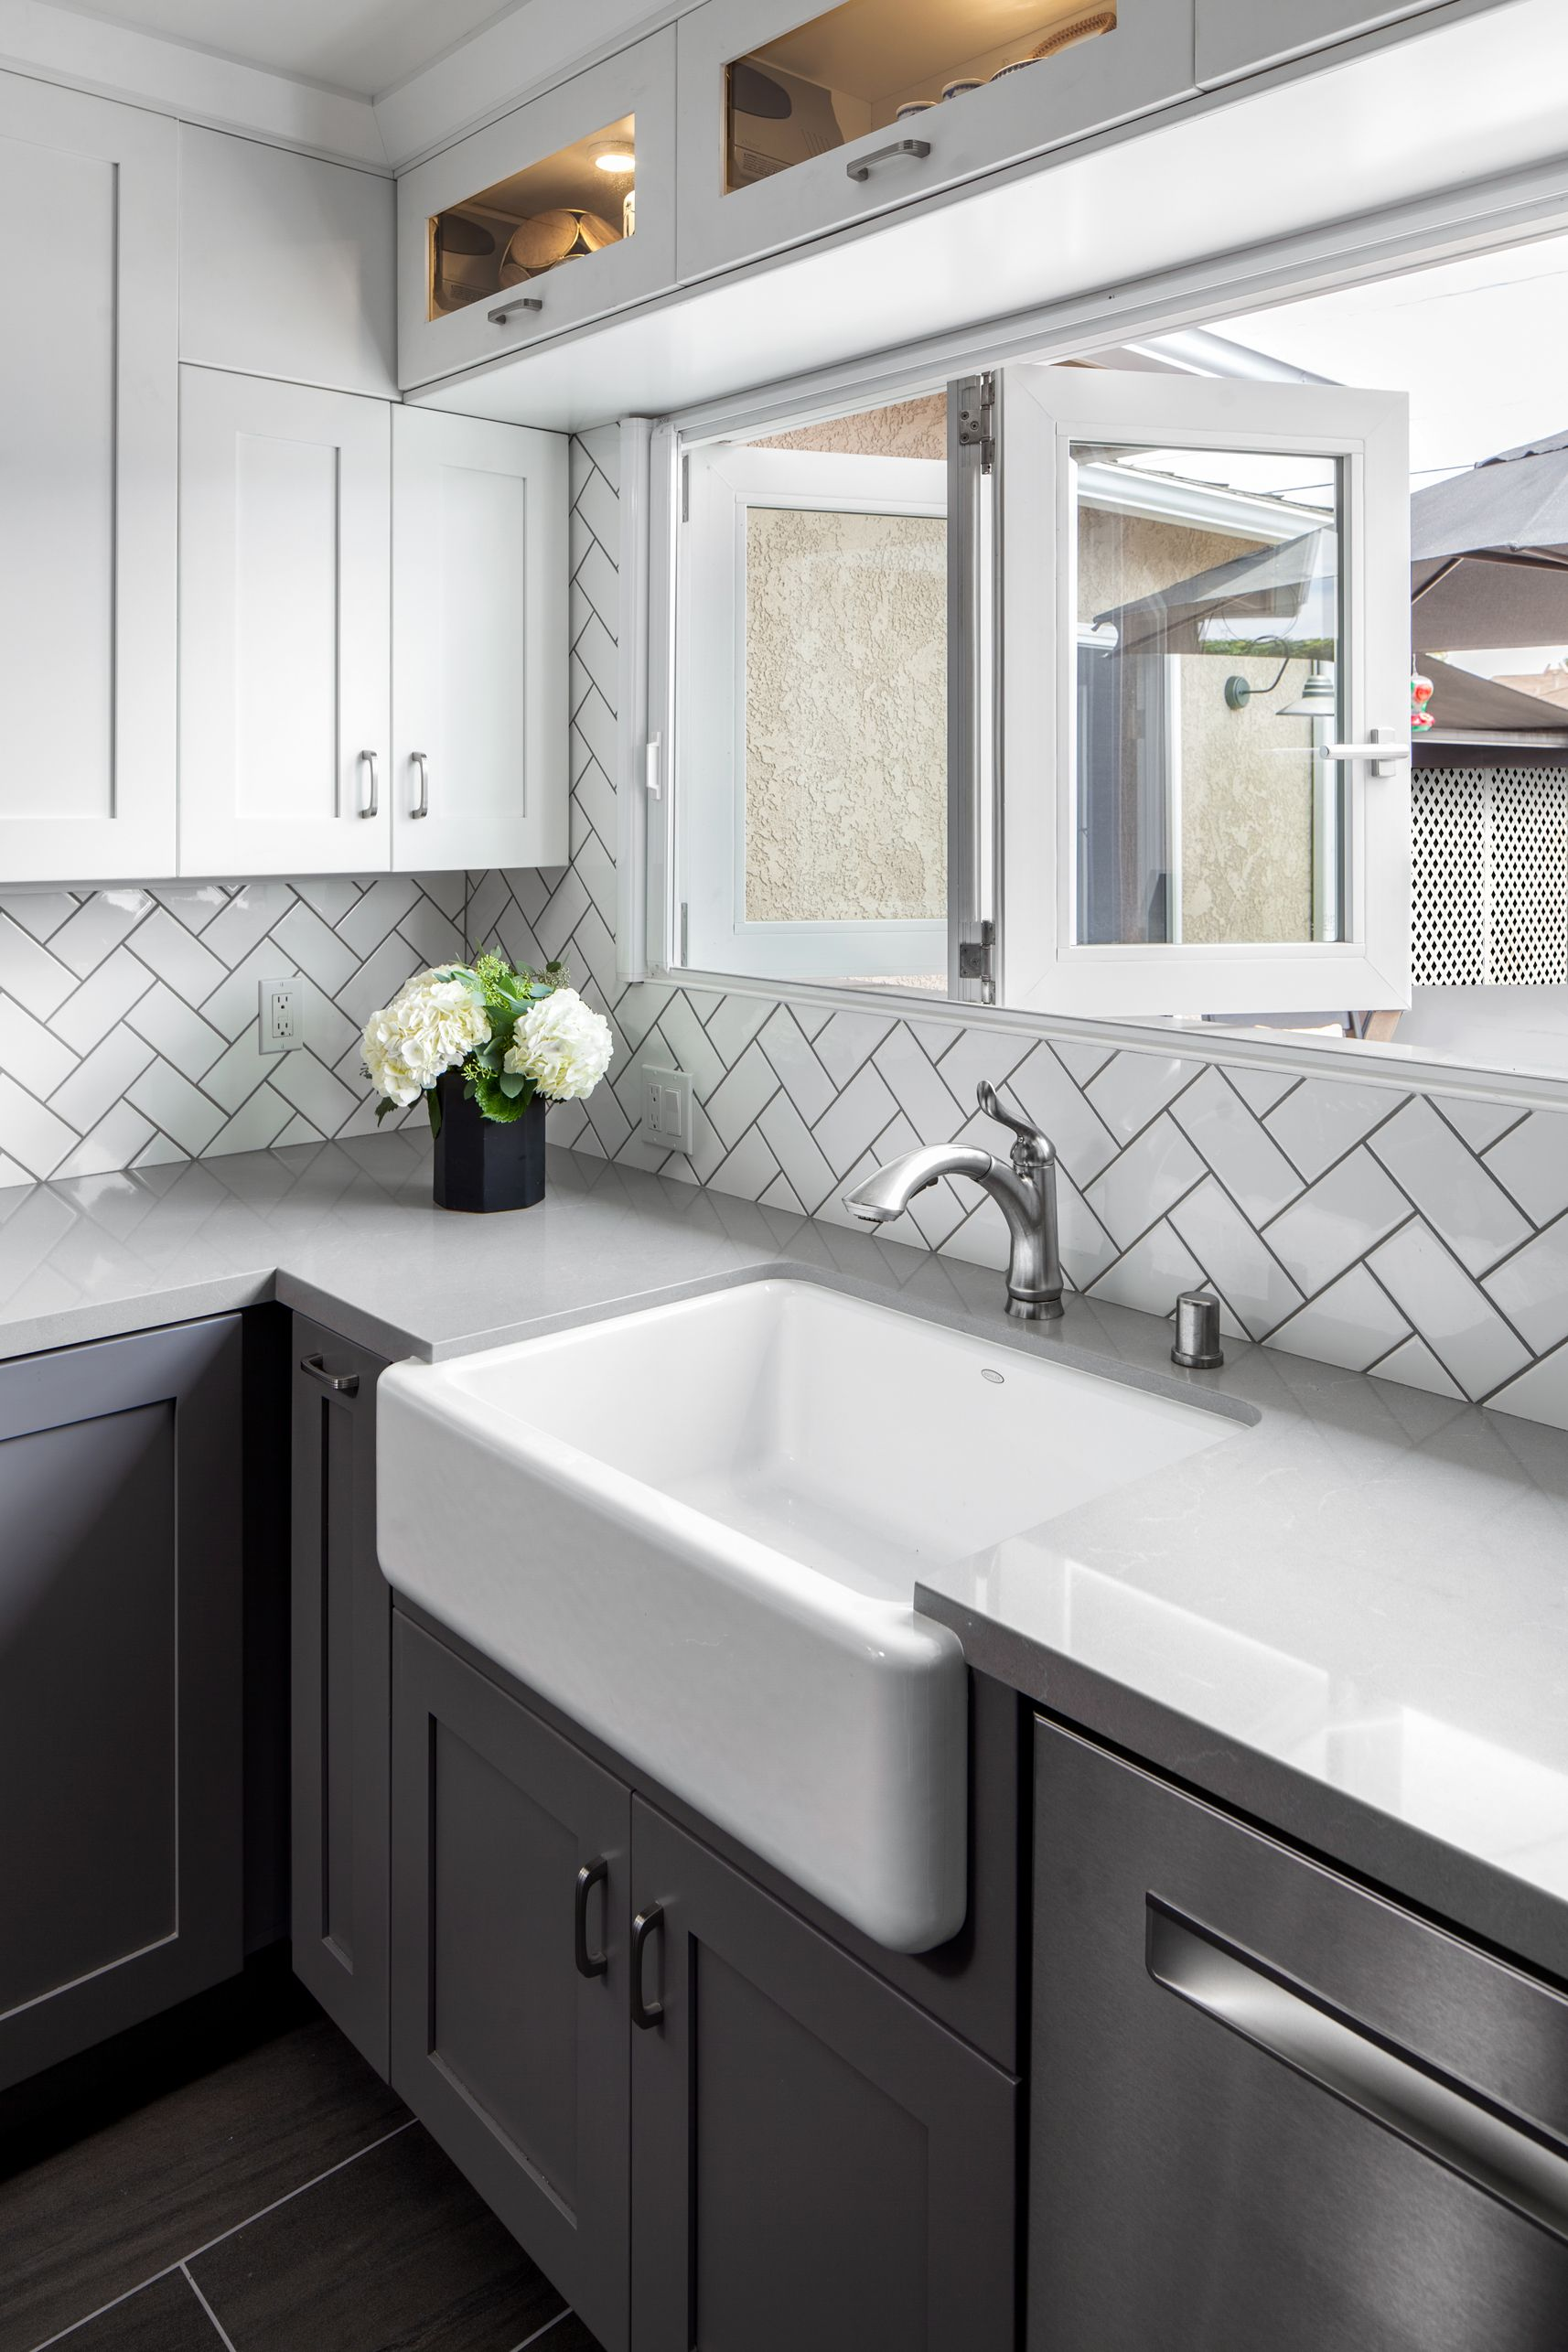 Remodeled Kitchen Complete With White Subway Tile Backsplash In